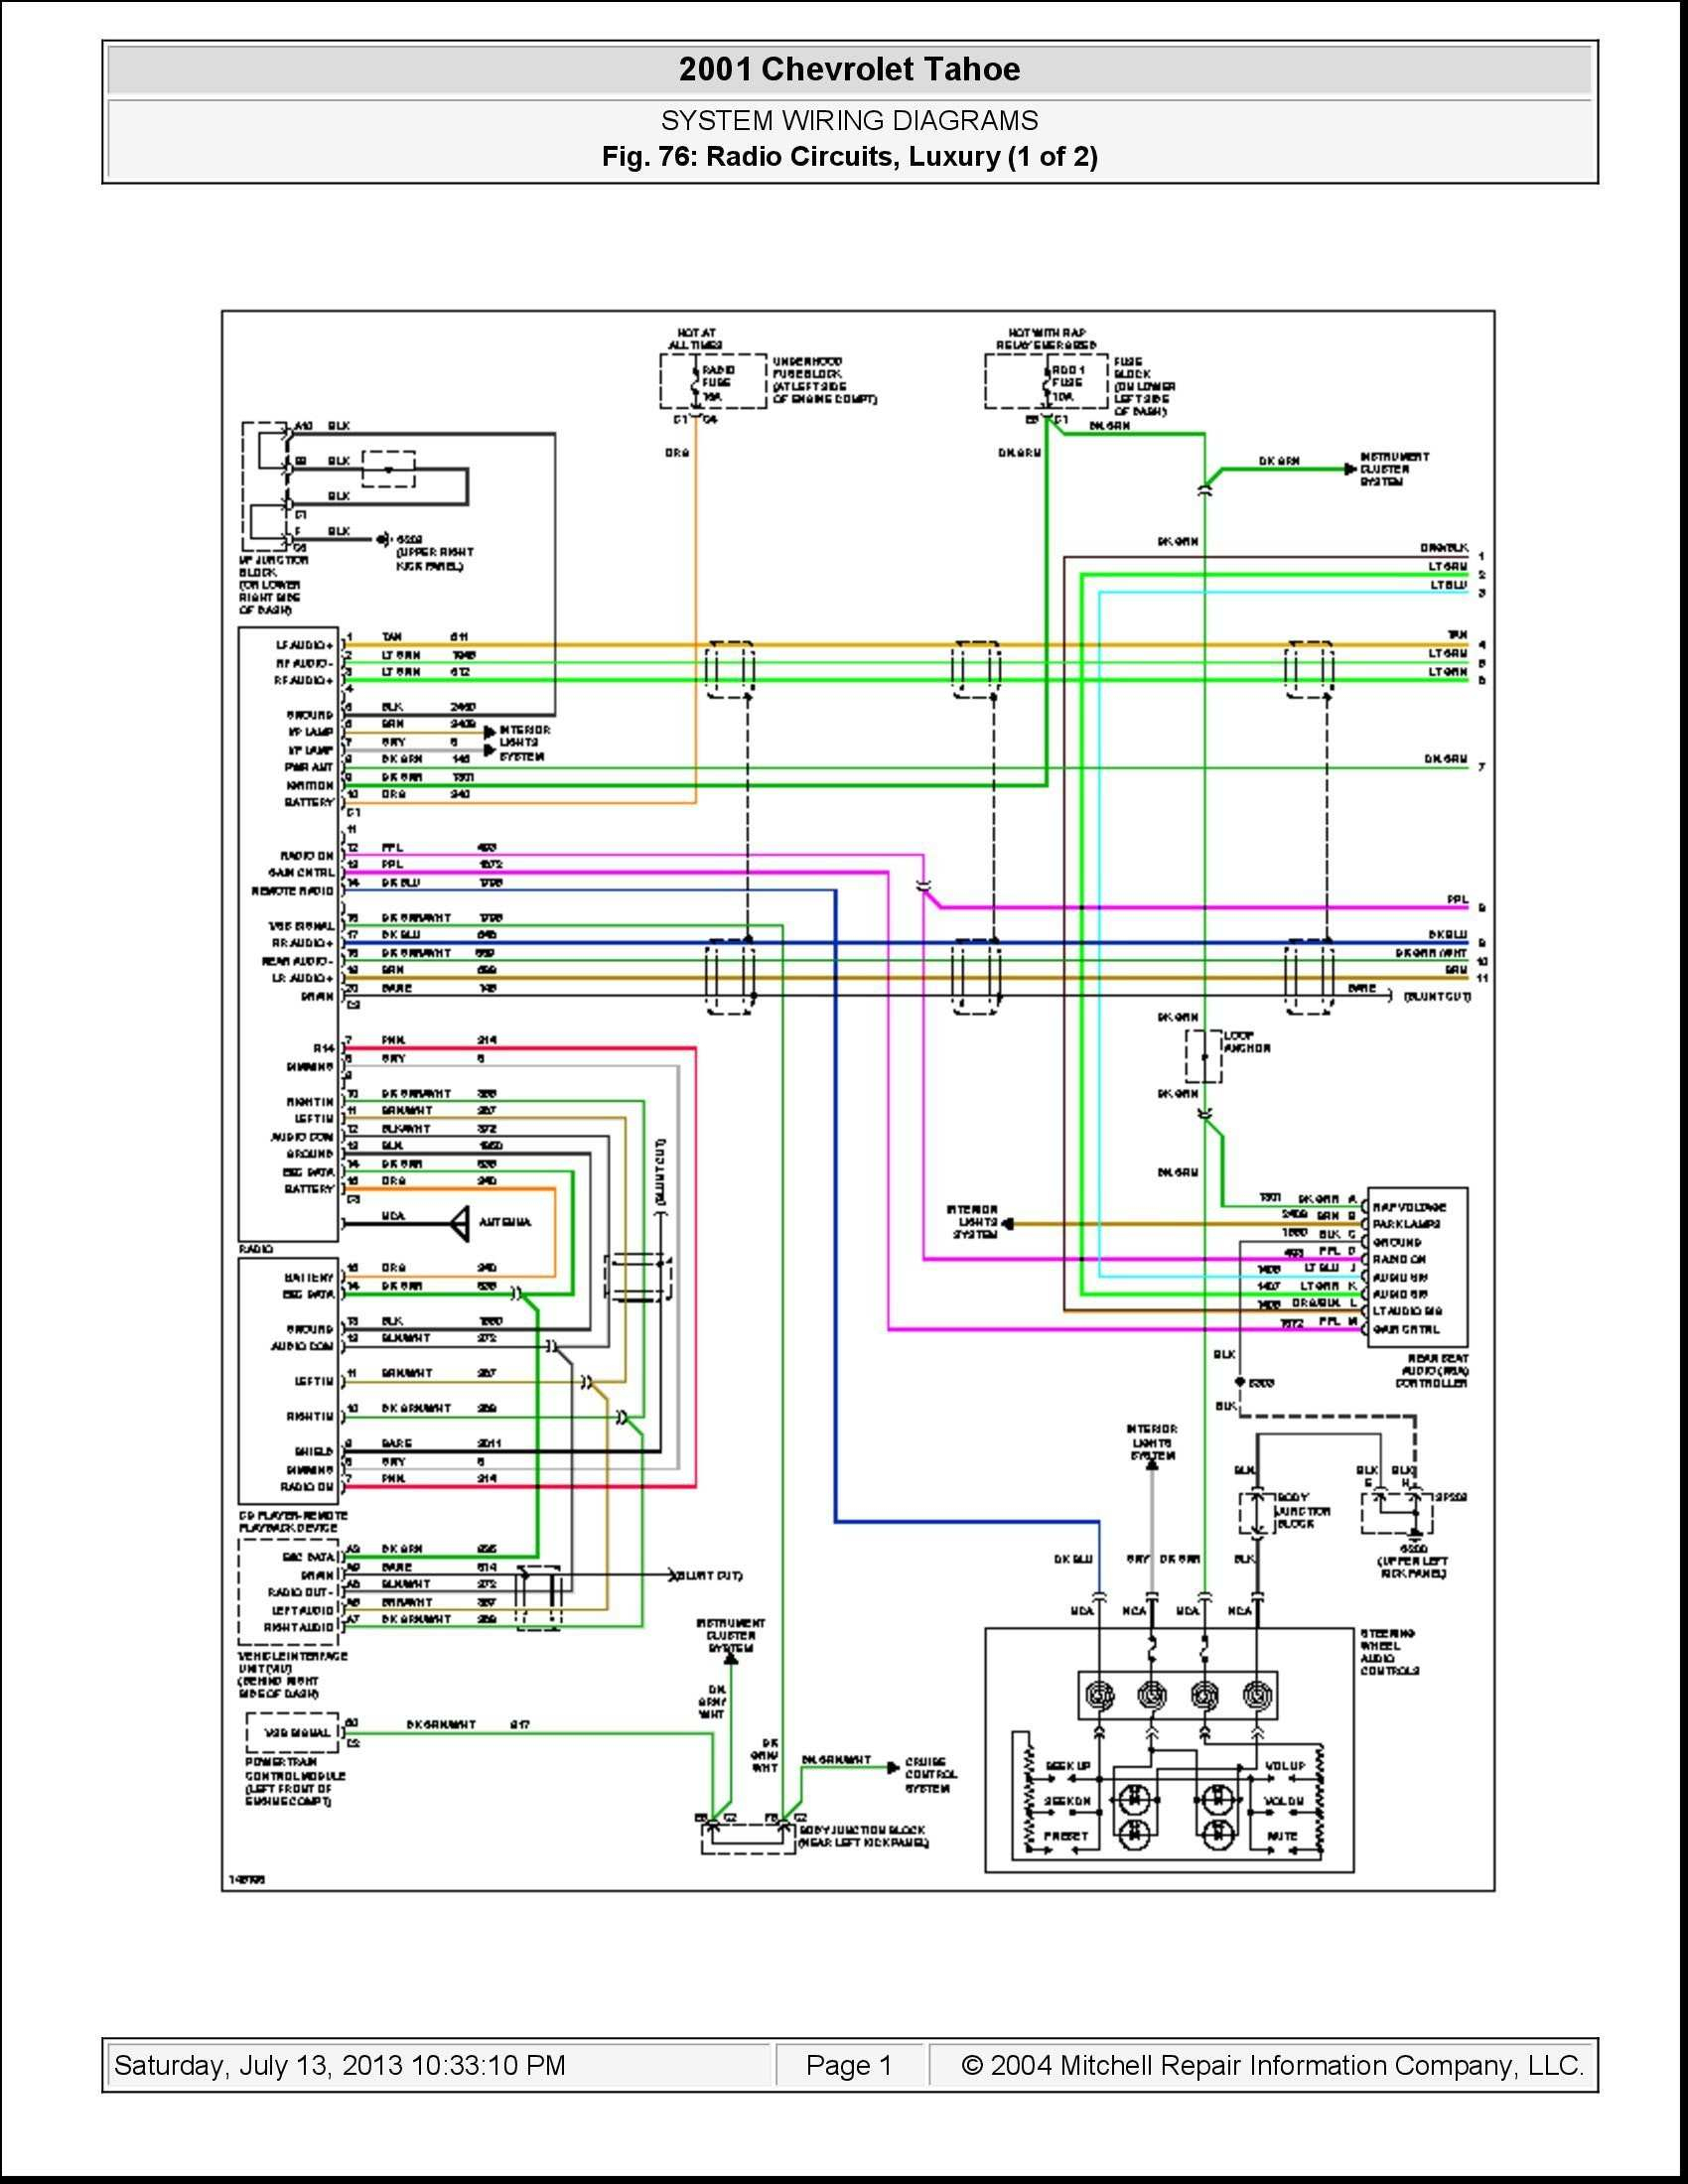 2004 chevy 2500hd trailer wiring diagram Download-2004 Chevy Silverado Radio Wiring Harness Diagram Best 2005 Chevy 19-n